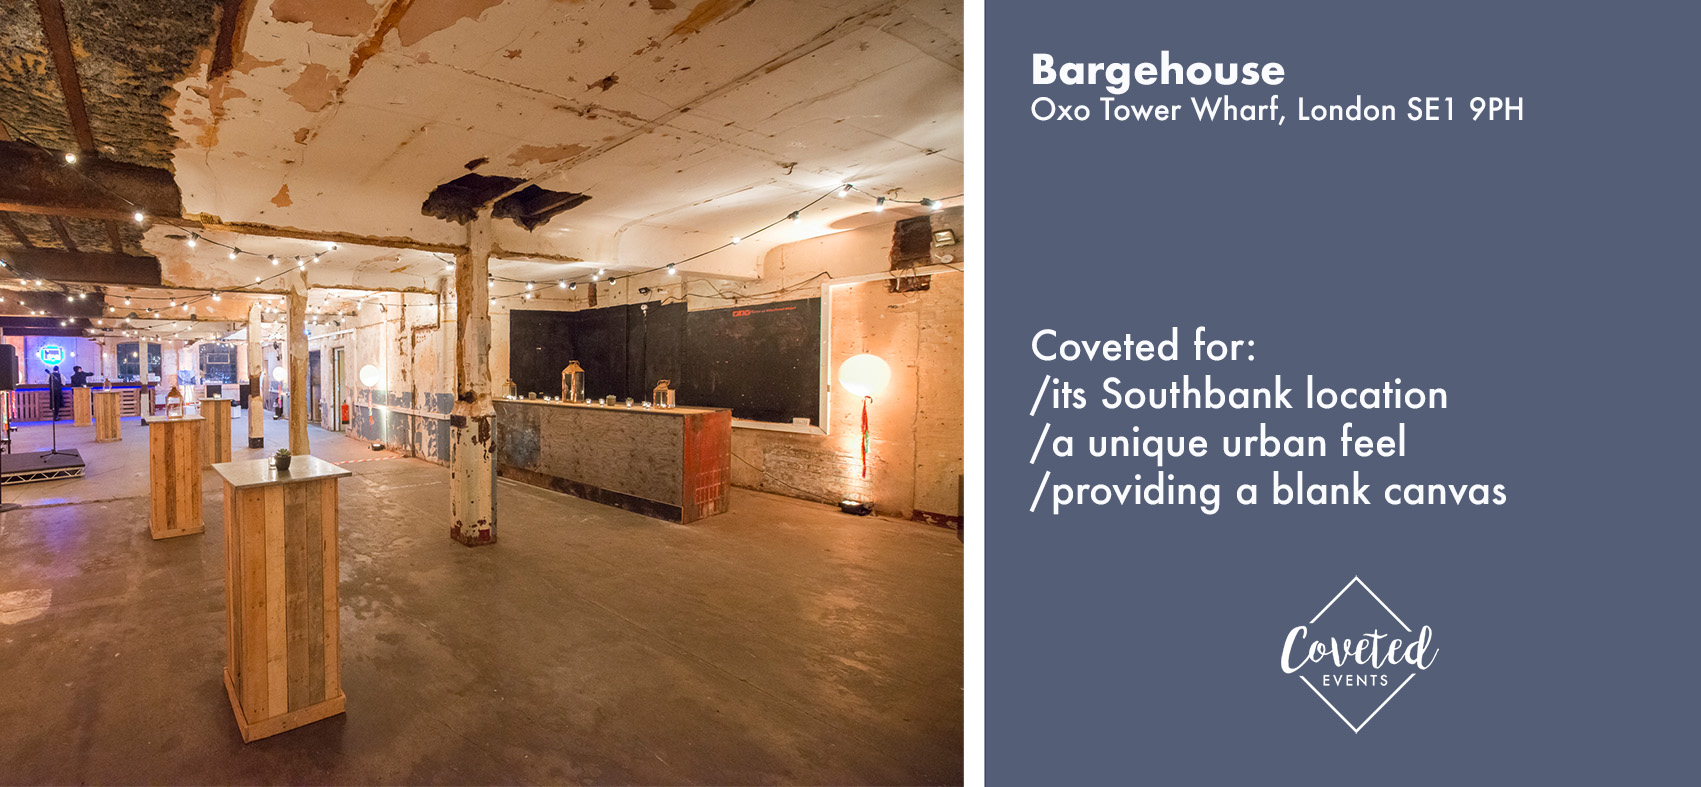 Venue Search - Bargehouse.jpg